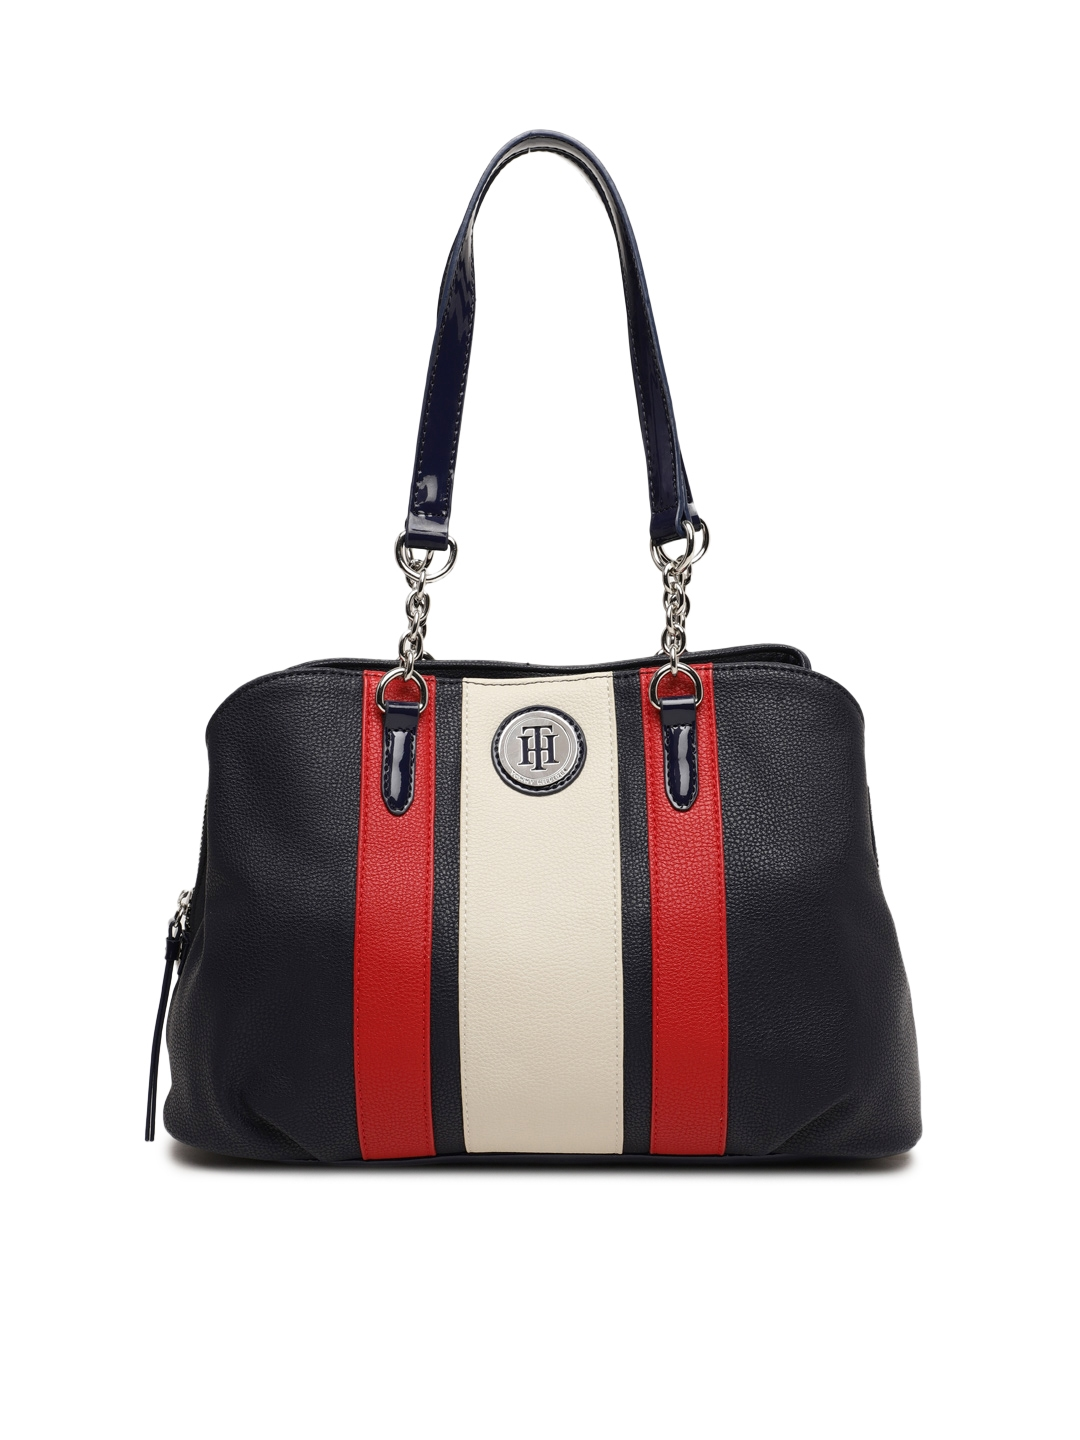 ae117aee7af Buy Tommy Hilfiger Navy Blue Striped Shoulder Bag - Handbags for ...